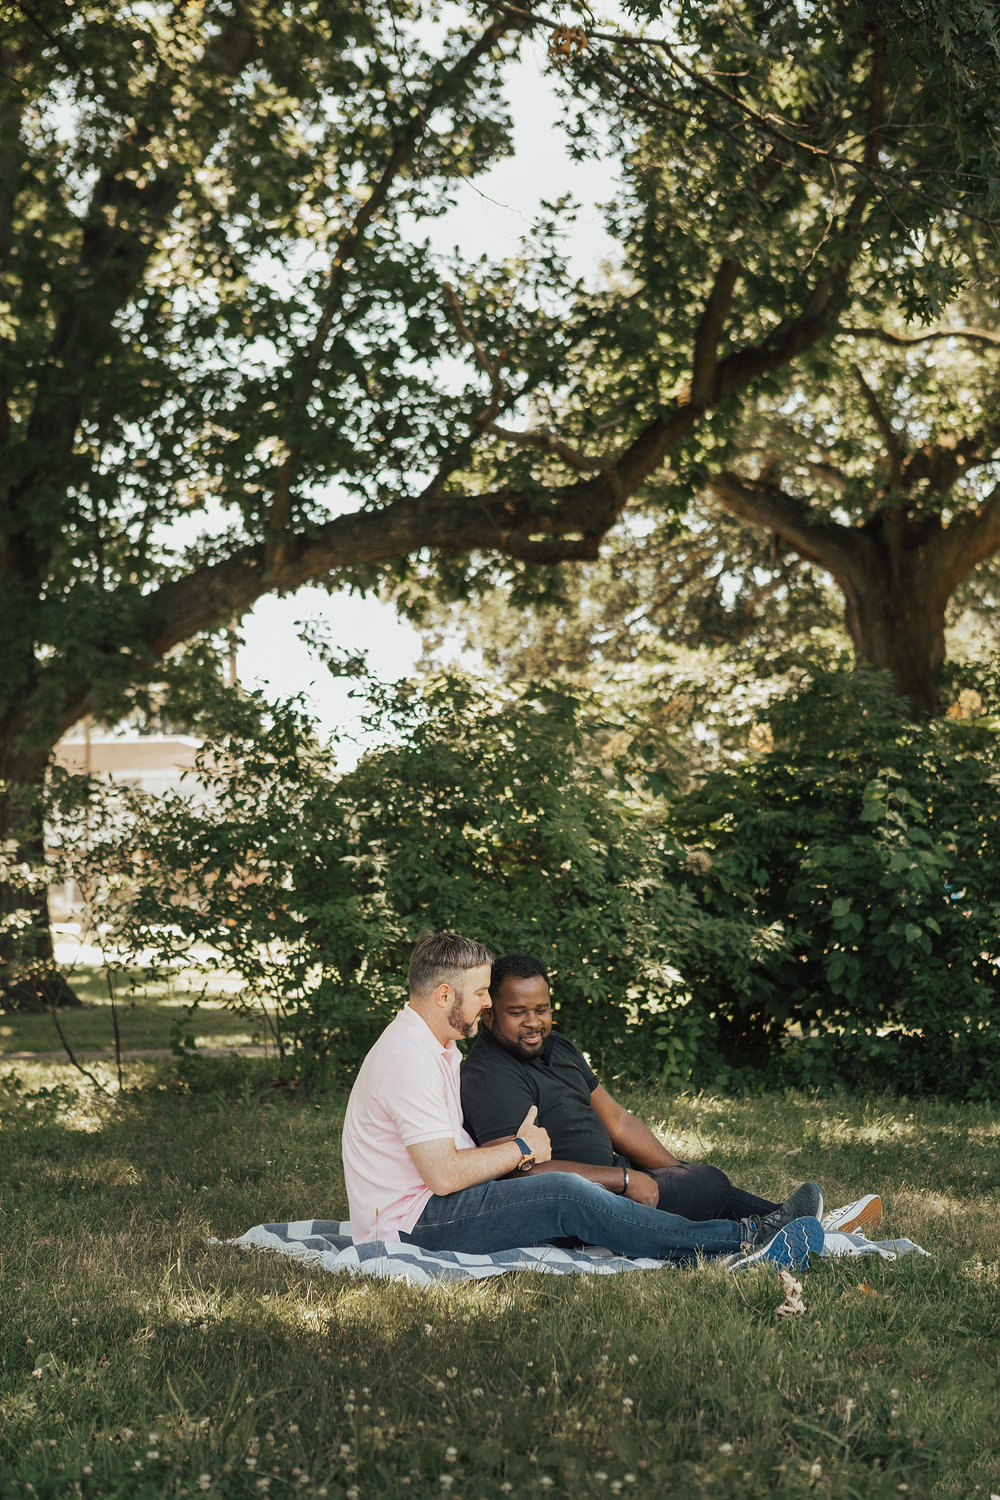 Joe_Mac_Creative_Philadelphia_Philly_LGBT_Gay_Engagement_Wedding_Photography__0005.jpg